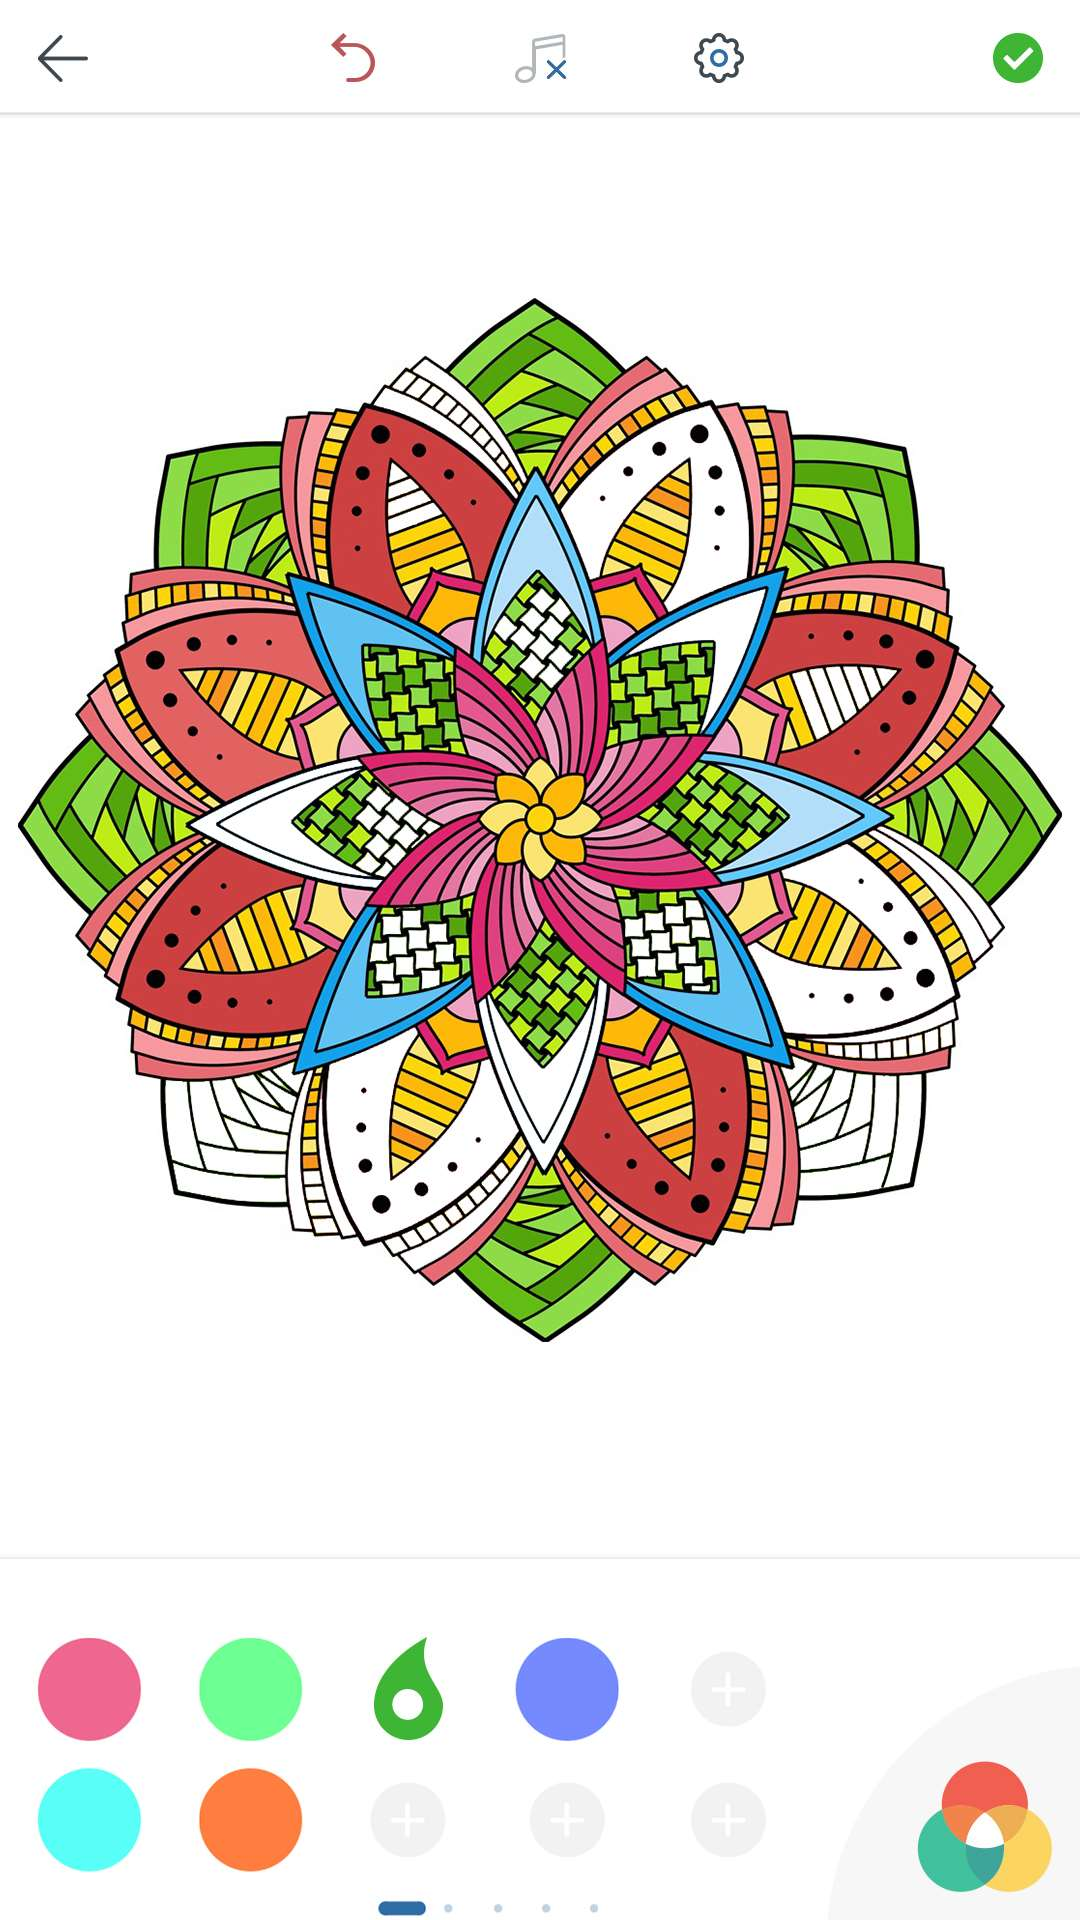 Illusion Wallpaper Hd Wallpapers moreover Raskraski Disney likewise Landscape Coloring Page Masal Evleri Pinterest For Printable Landscape Coloring Pages For Adults X in addition Sailoor Moon Para Colorear furthermore Magic Mandala Coloring Pages Android Screenshot. on coloring pages for adults